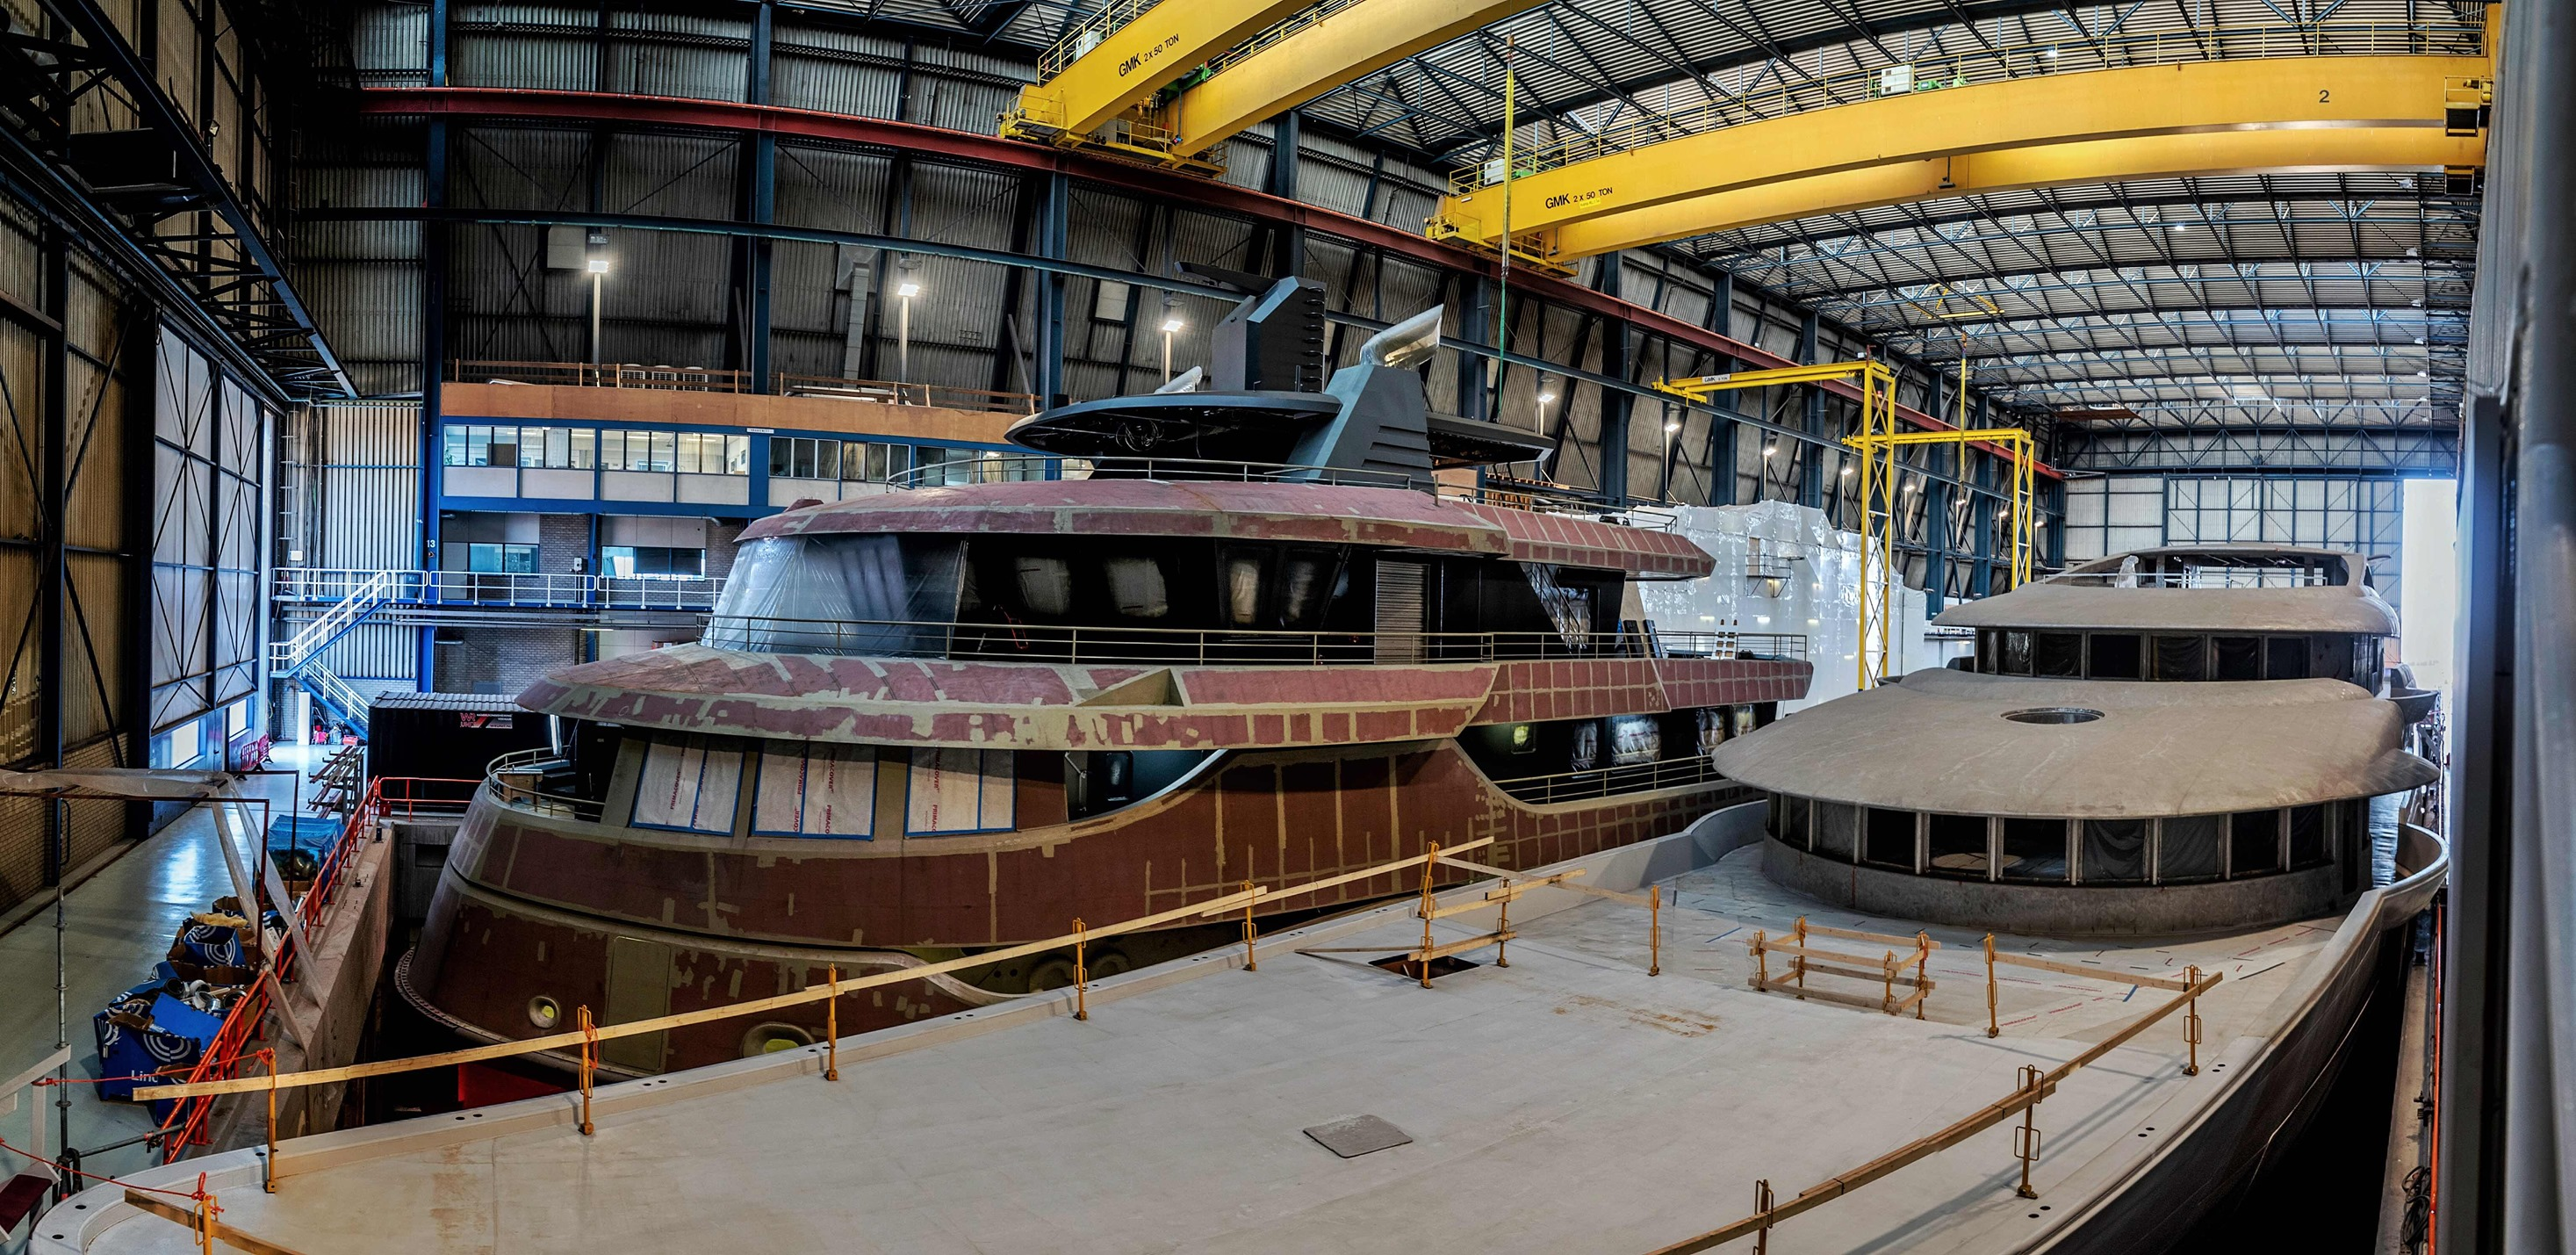 68m conversion Project Ragnar nearing completion at Icon